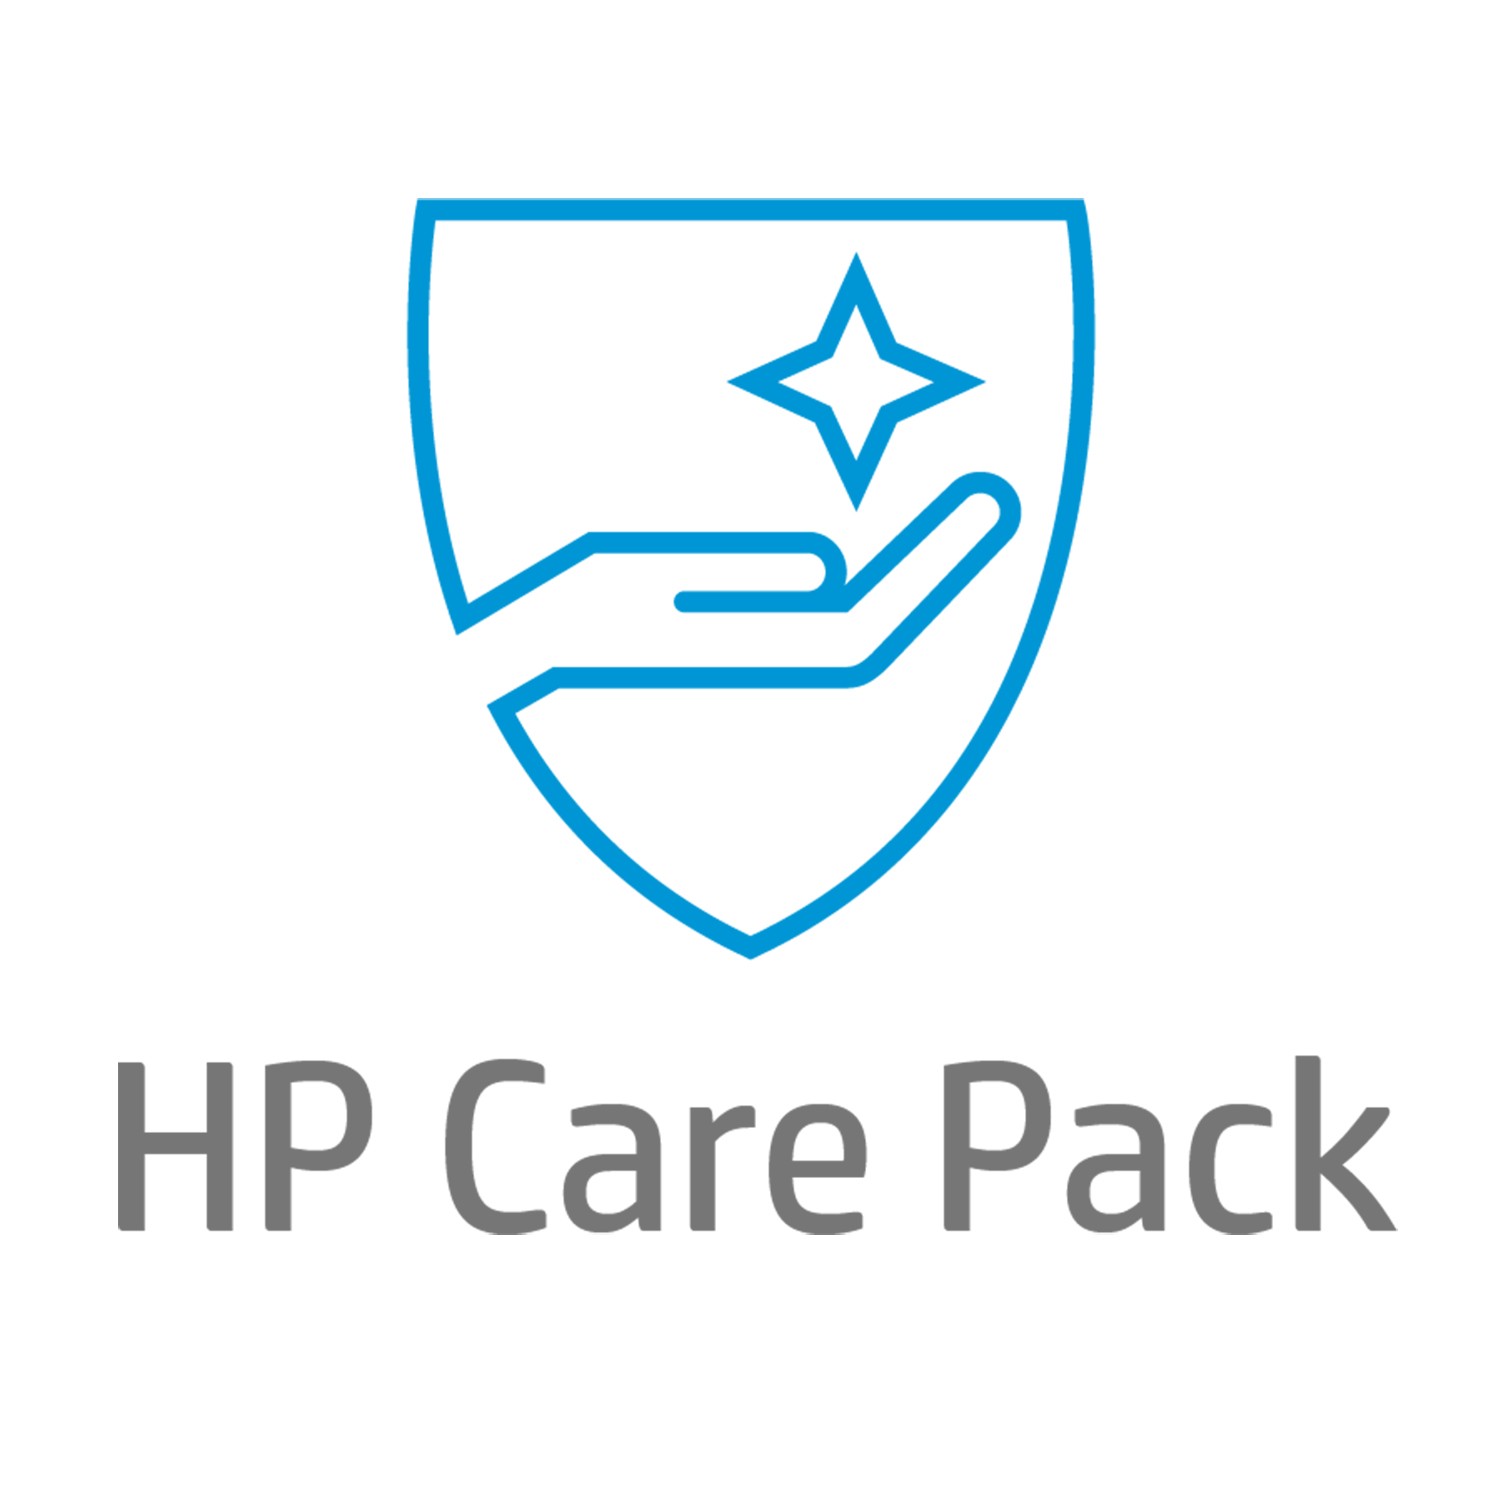 HP 2y Return To Depot Notebook Only SVC,Commercial SMB Notebook,2 Yr Return To Depot.Excl Ext Mon. Cust Delivers To Repair Ctr. HP Rtns Unit. 8-5pm, Std Bus Days Excl HP Hol. 3 Day TAT U9BC4E - C2000